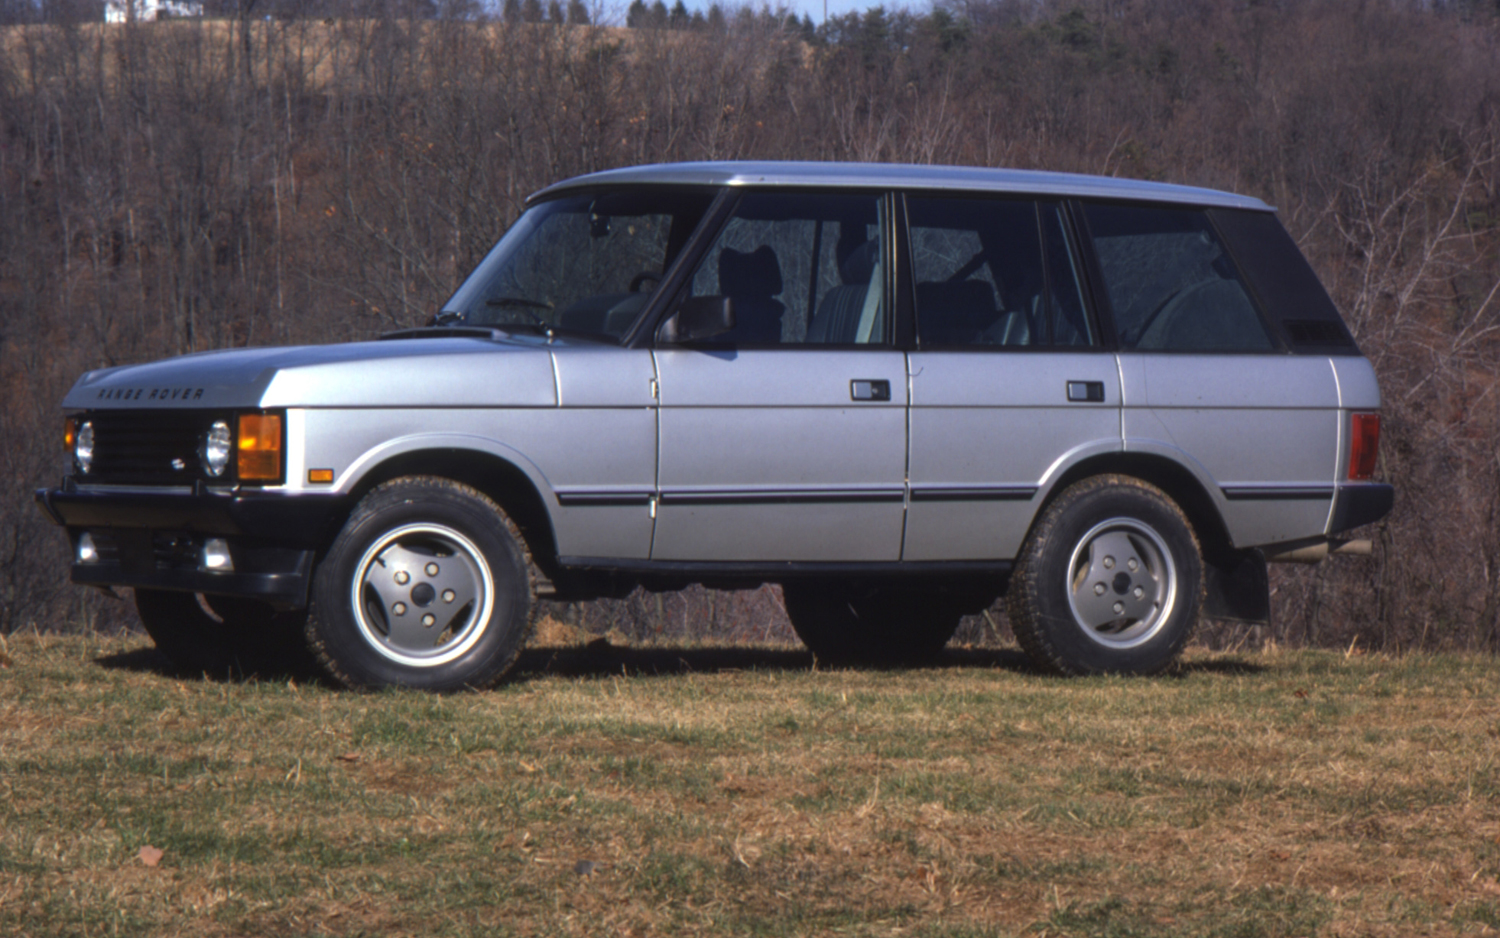 Top 10 Most Notable Land Rovers in the U.S.